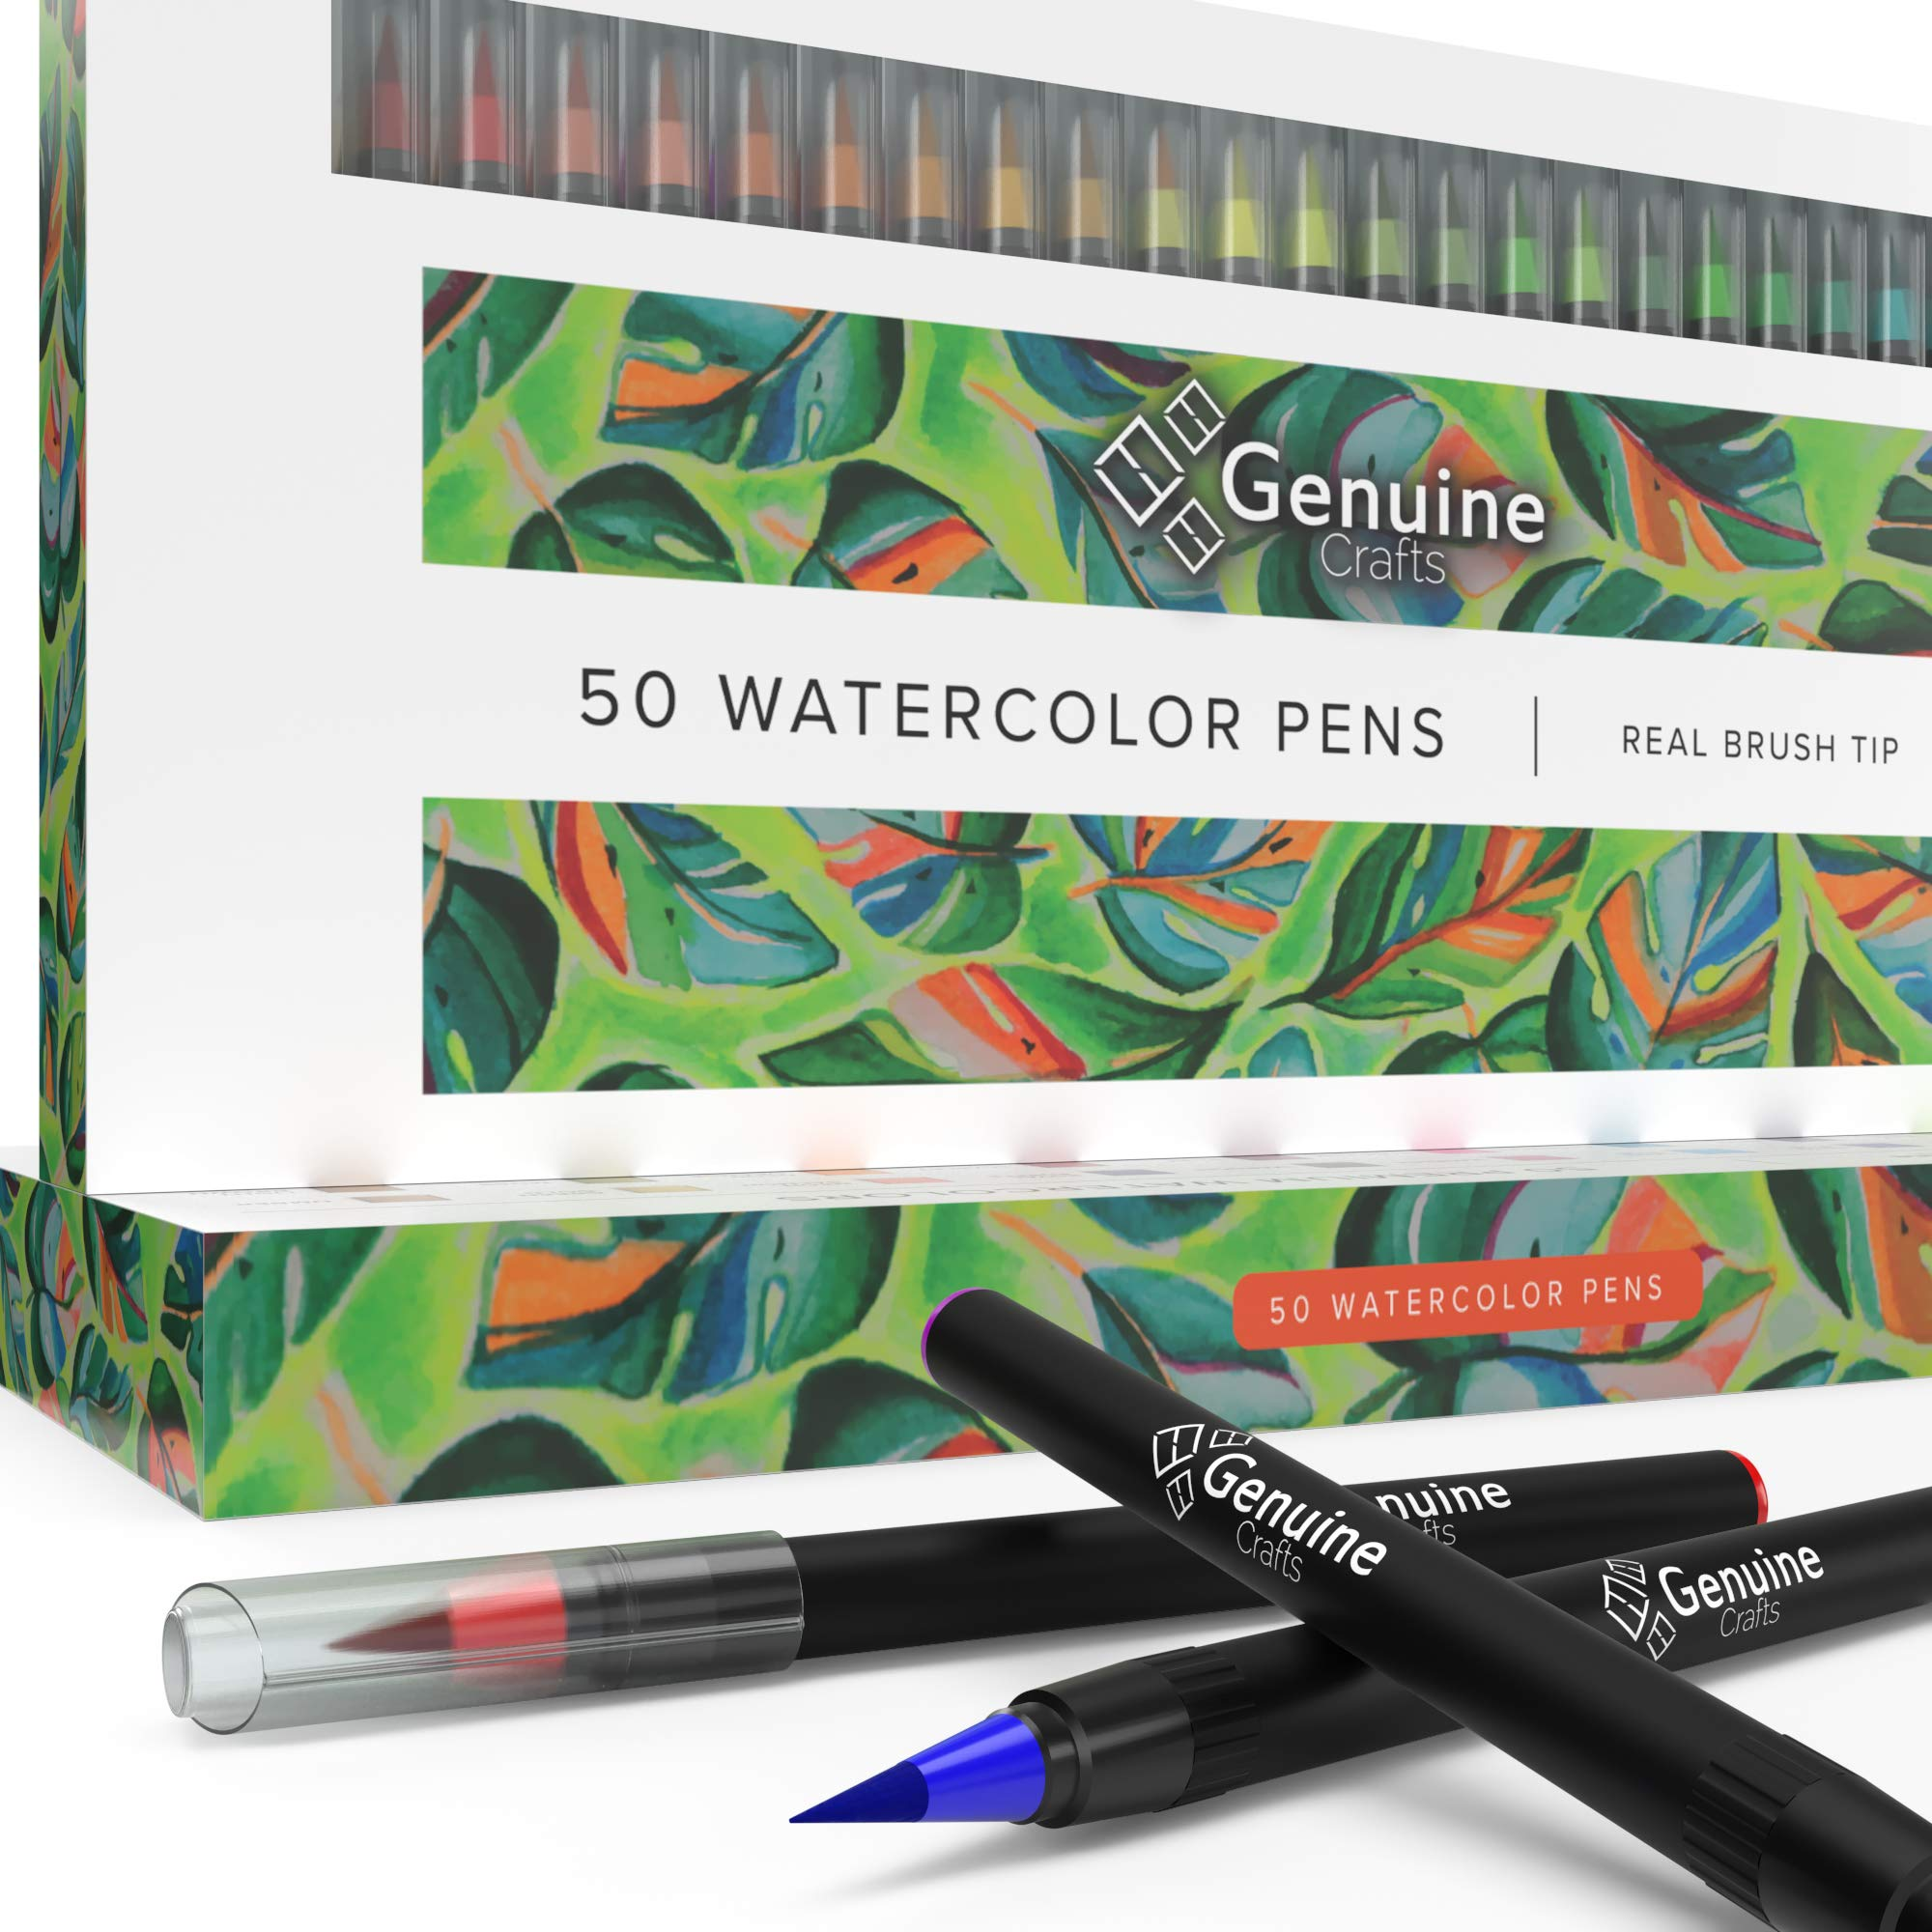 Watercolor Brush Pens by Genuine Crafts - Set of 50 Premium Colors - Real Brush Tips - No Mess Storage Case - Washable Nontoxic Markers - Portable Painting